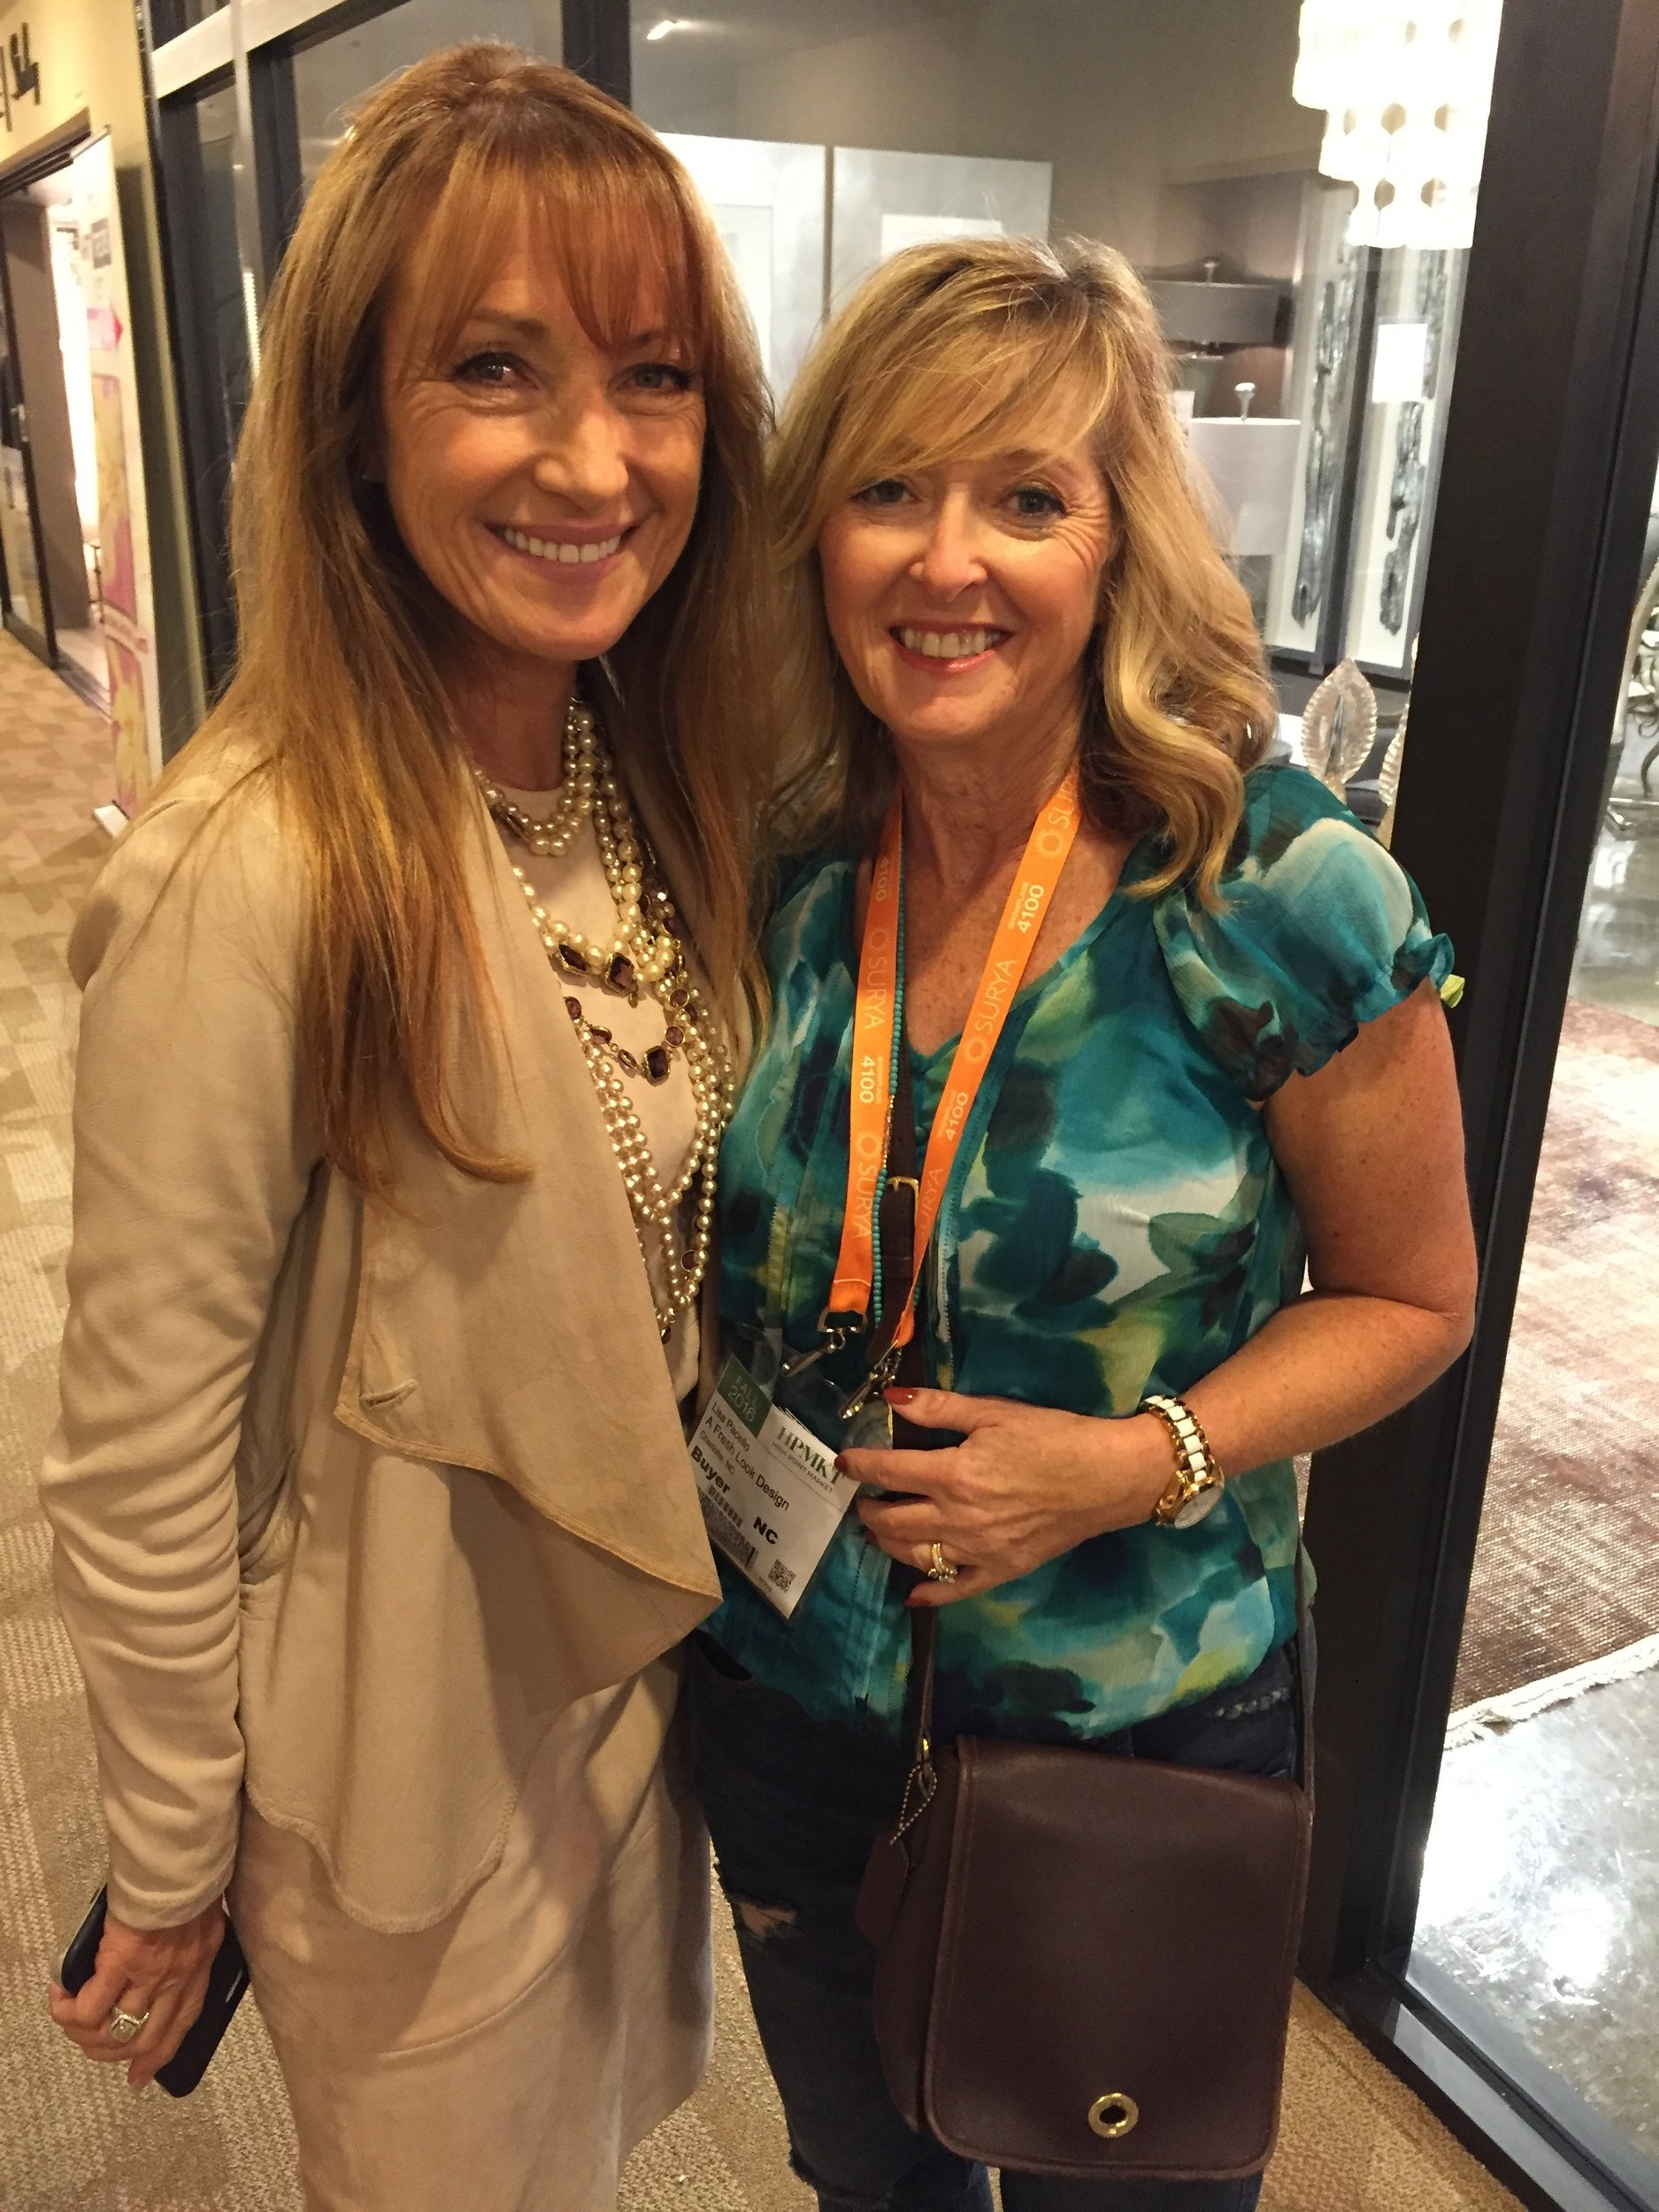 Hanging out with Jane Seymour and discussing her furniture collaboration with Michael Amini and her Style Craft lamps. She was so nice!